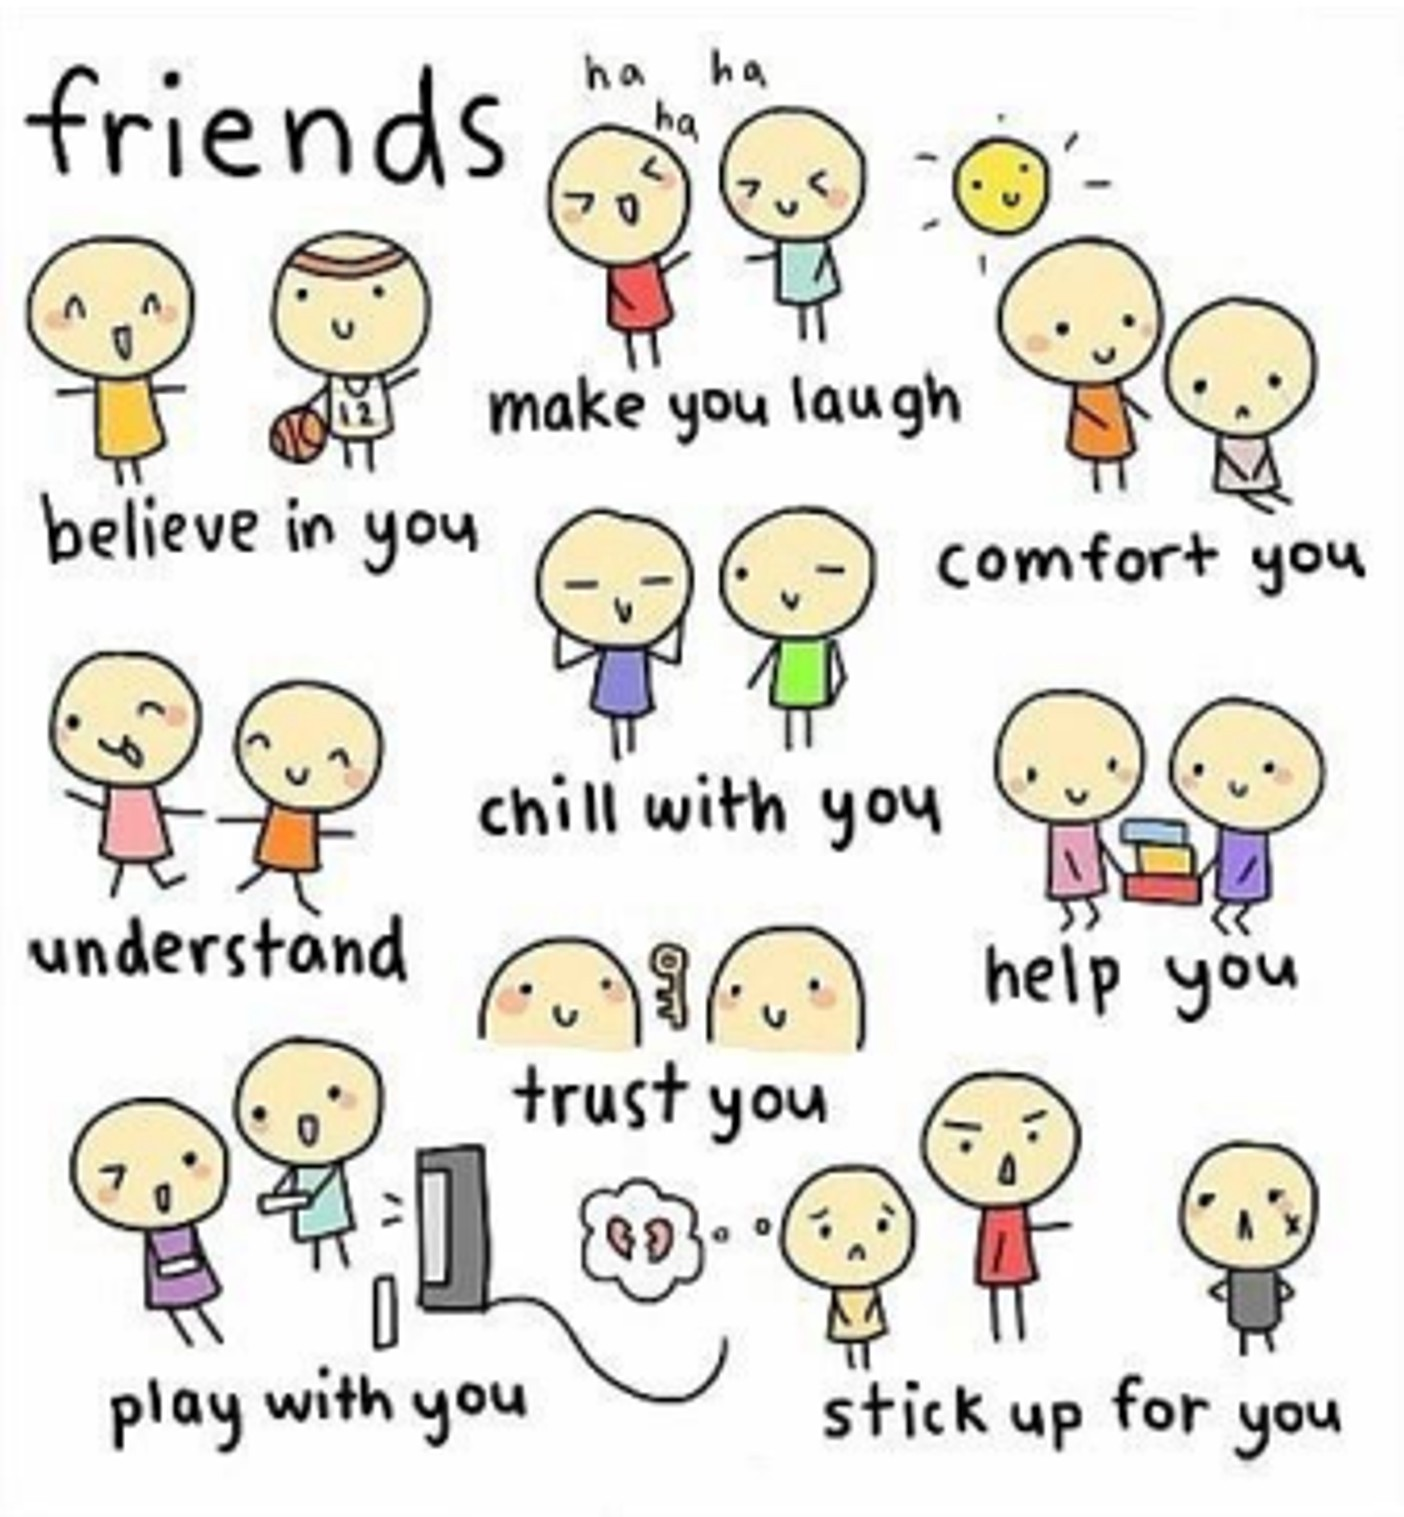 I Love My Friends Quotes free image